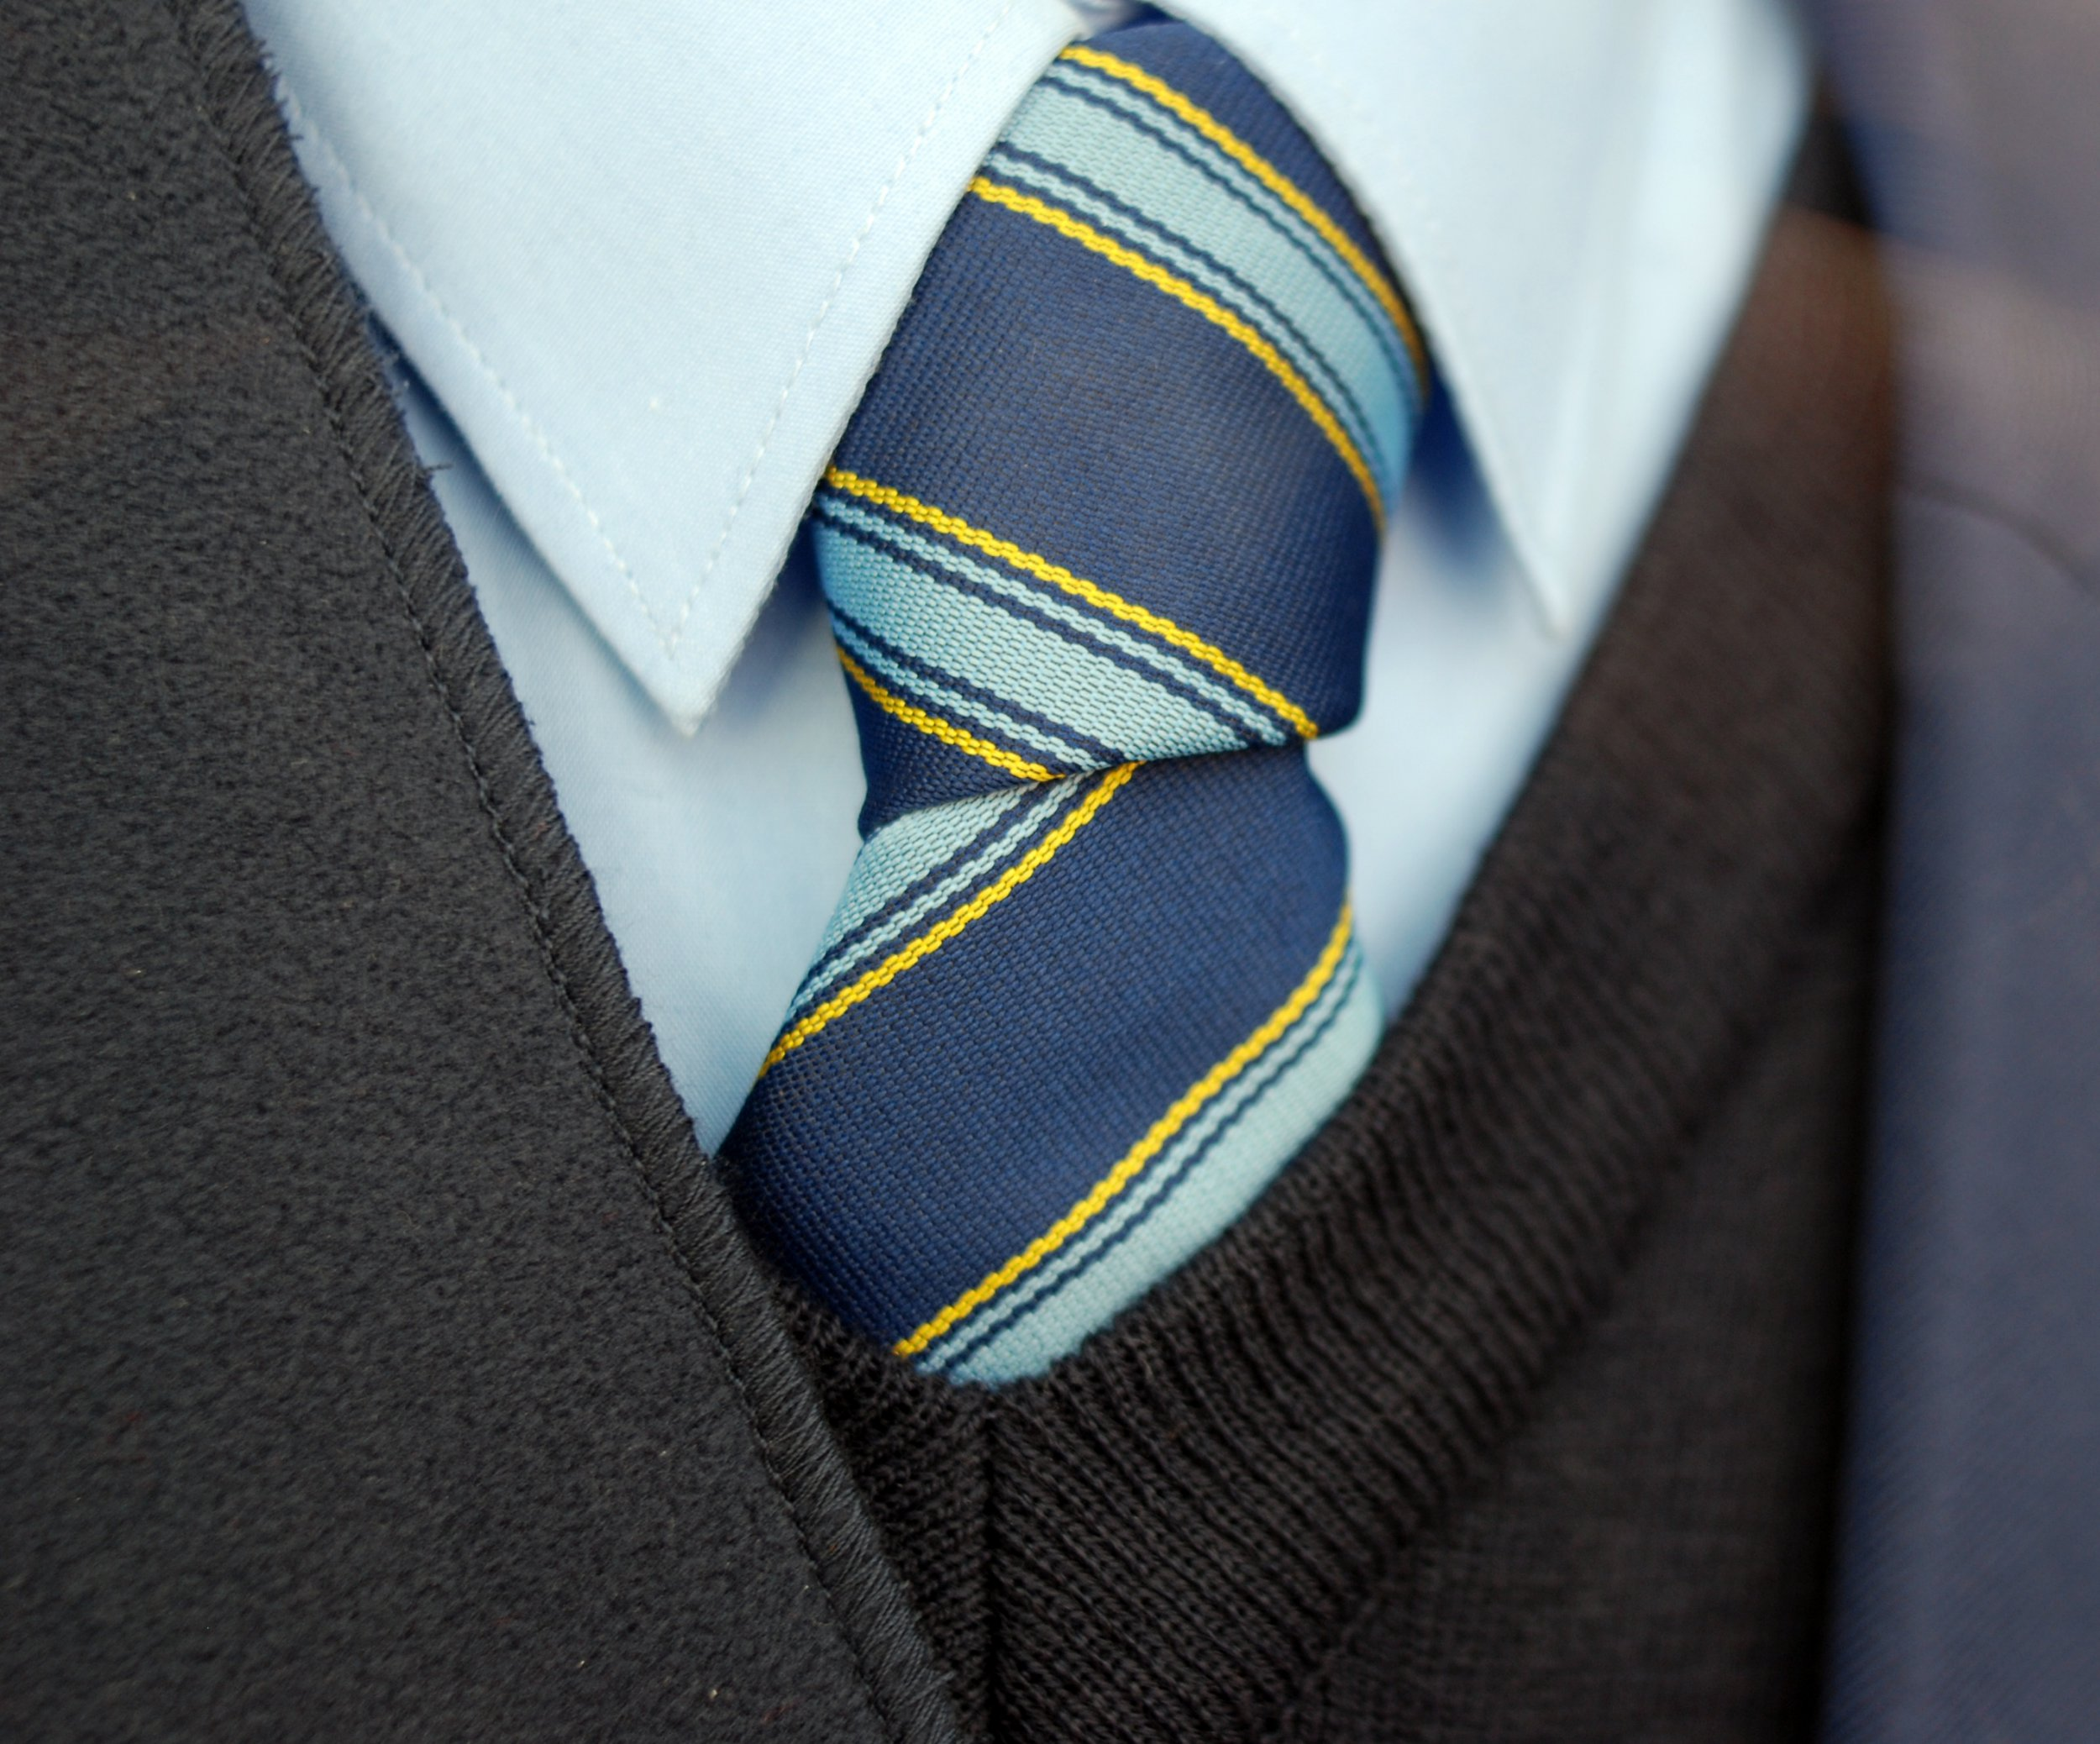 You could claim cash towards school uniforms from your local council